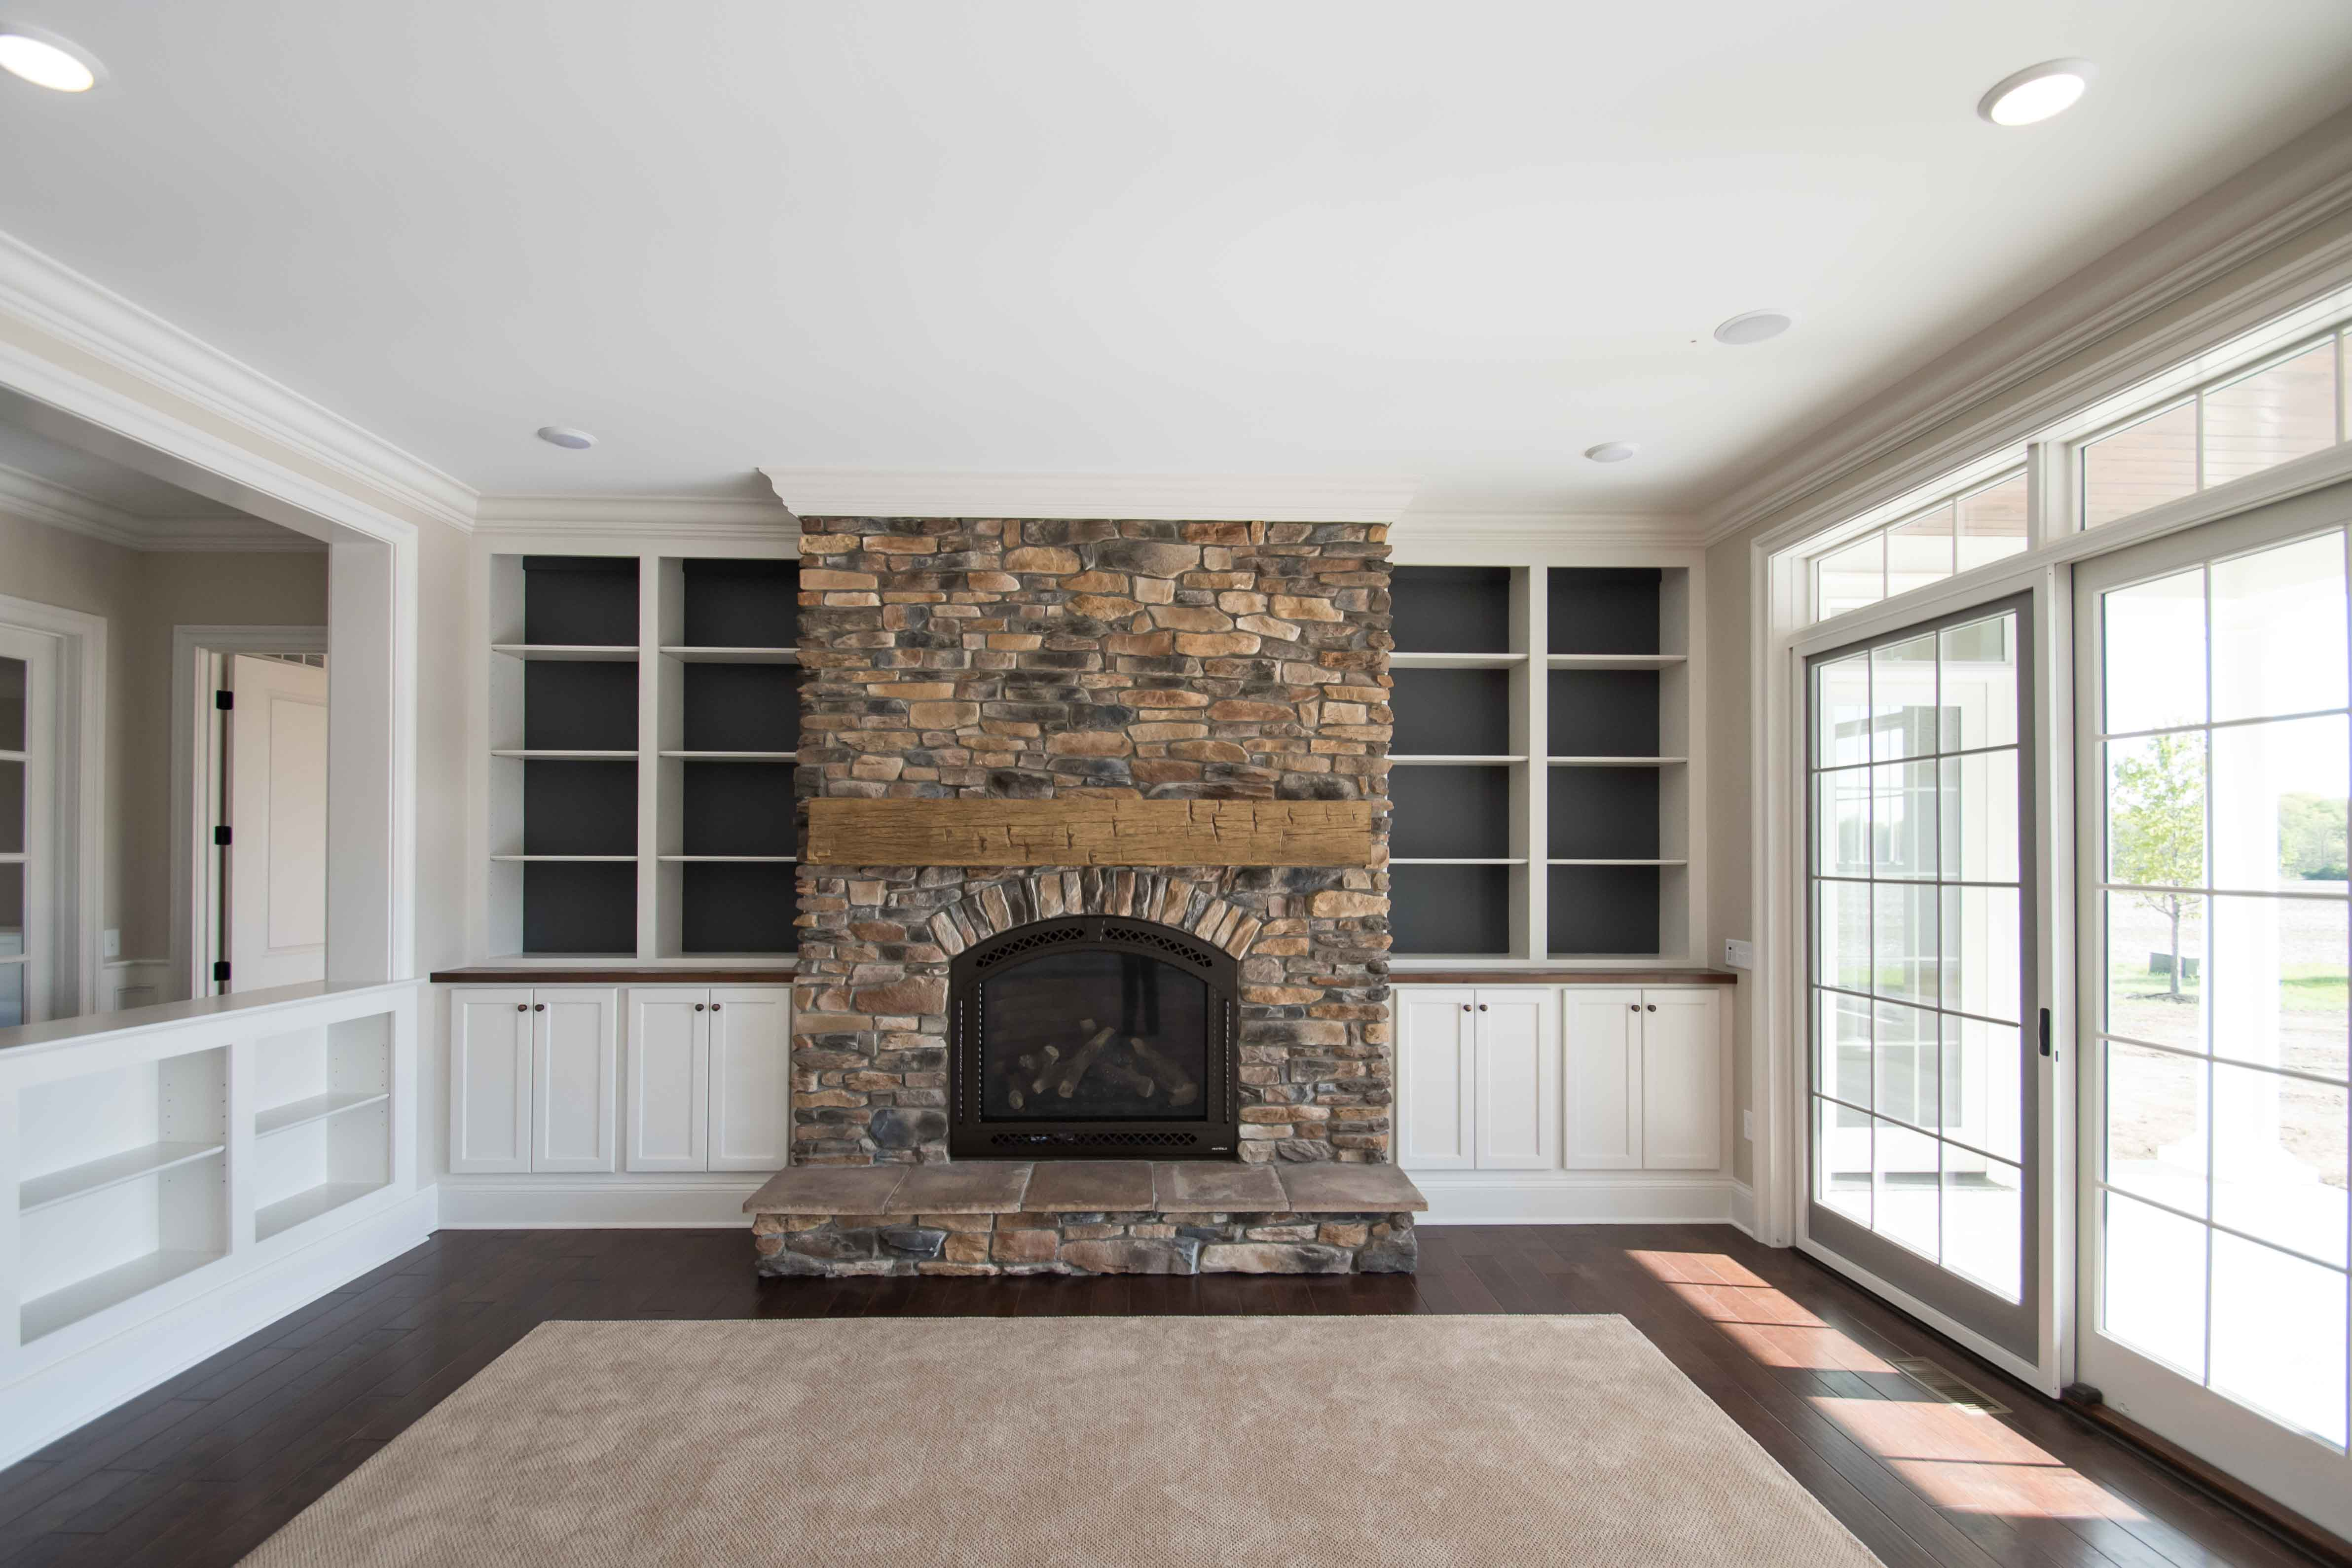 "42"" Propane fireplace, Cerona-42, new bronze, with Chateau Deluxe front. Sienna Ledge Stone, hand hewed wood beam for mantle"